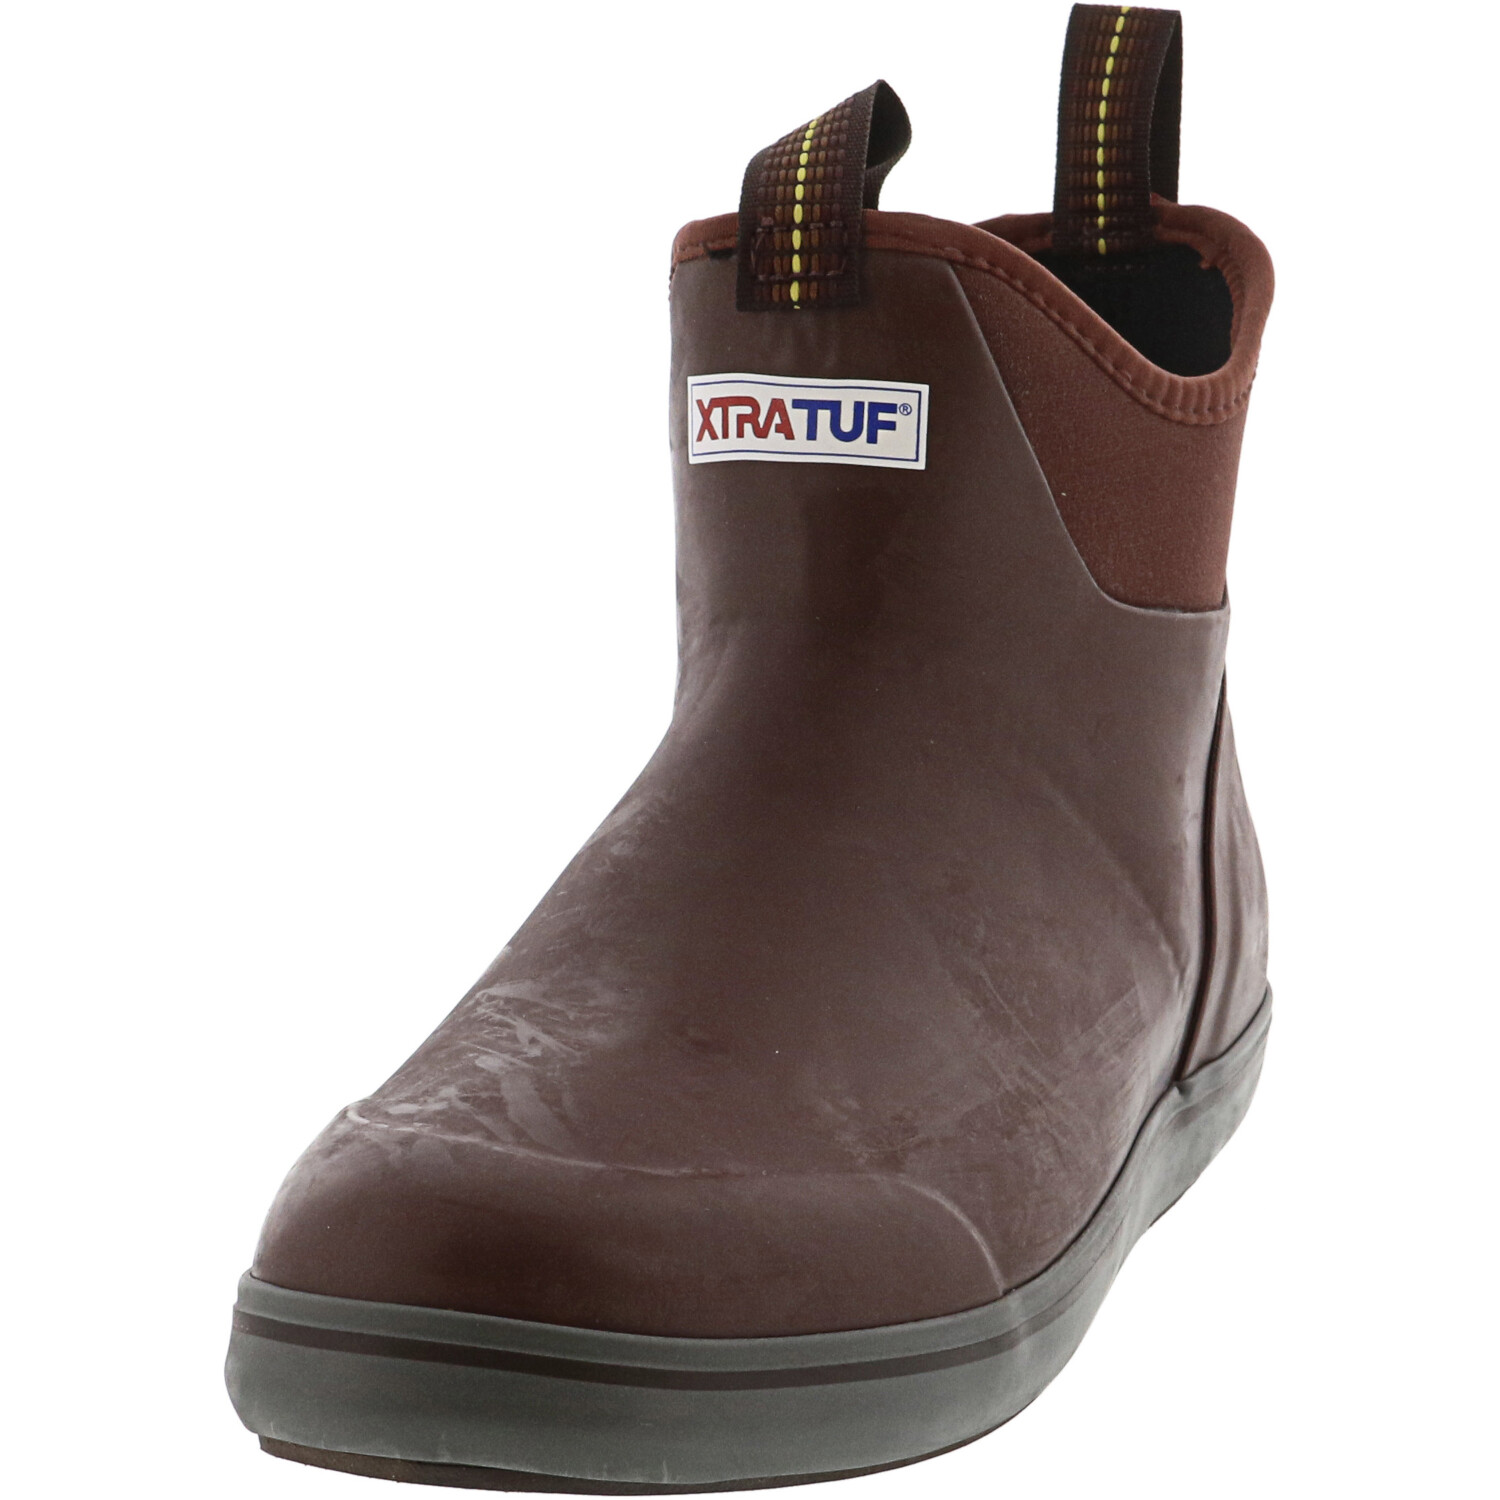 Xtratuf Men's Ankle Deck Boot Maroon Ankle-High Rubber - 12M